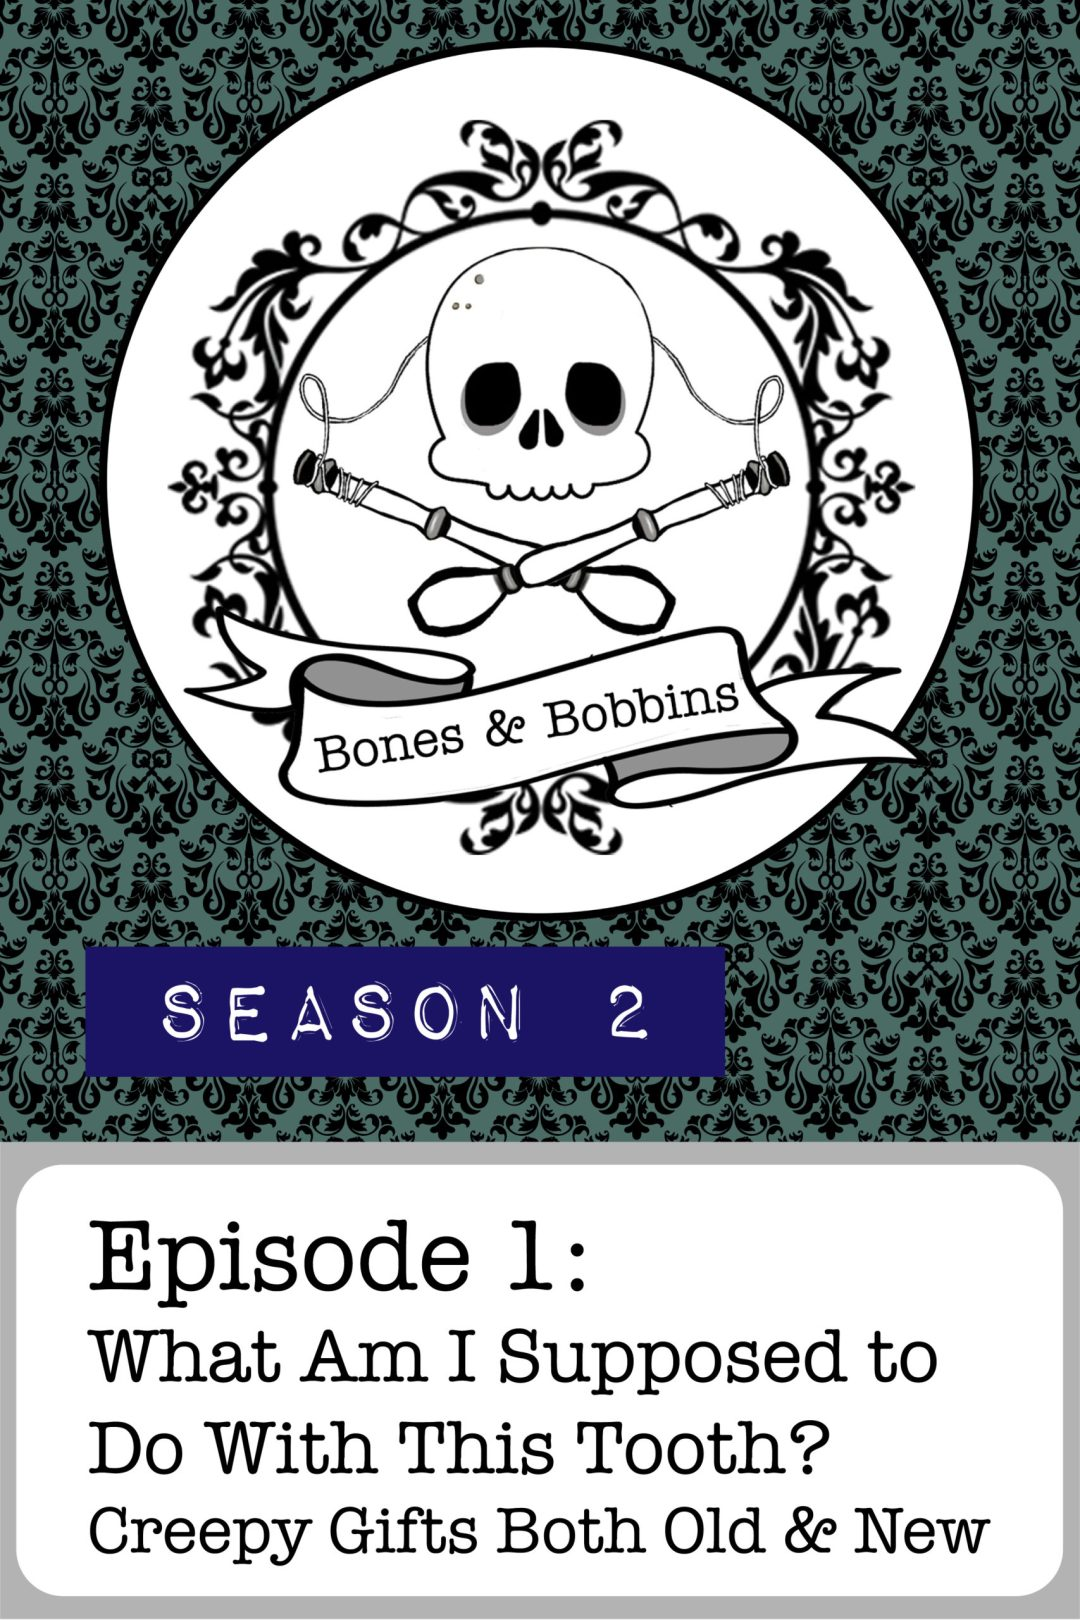 The Bones & Bobbins Podcast, Season 2, Episode 01: What Am I Supposed to Do With This Tooth? Creepy Gifts Both Old and New